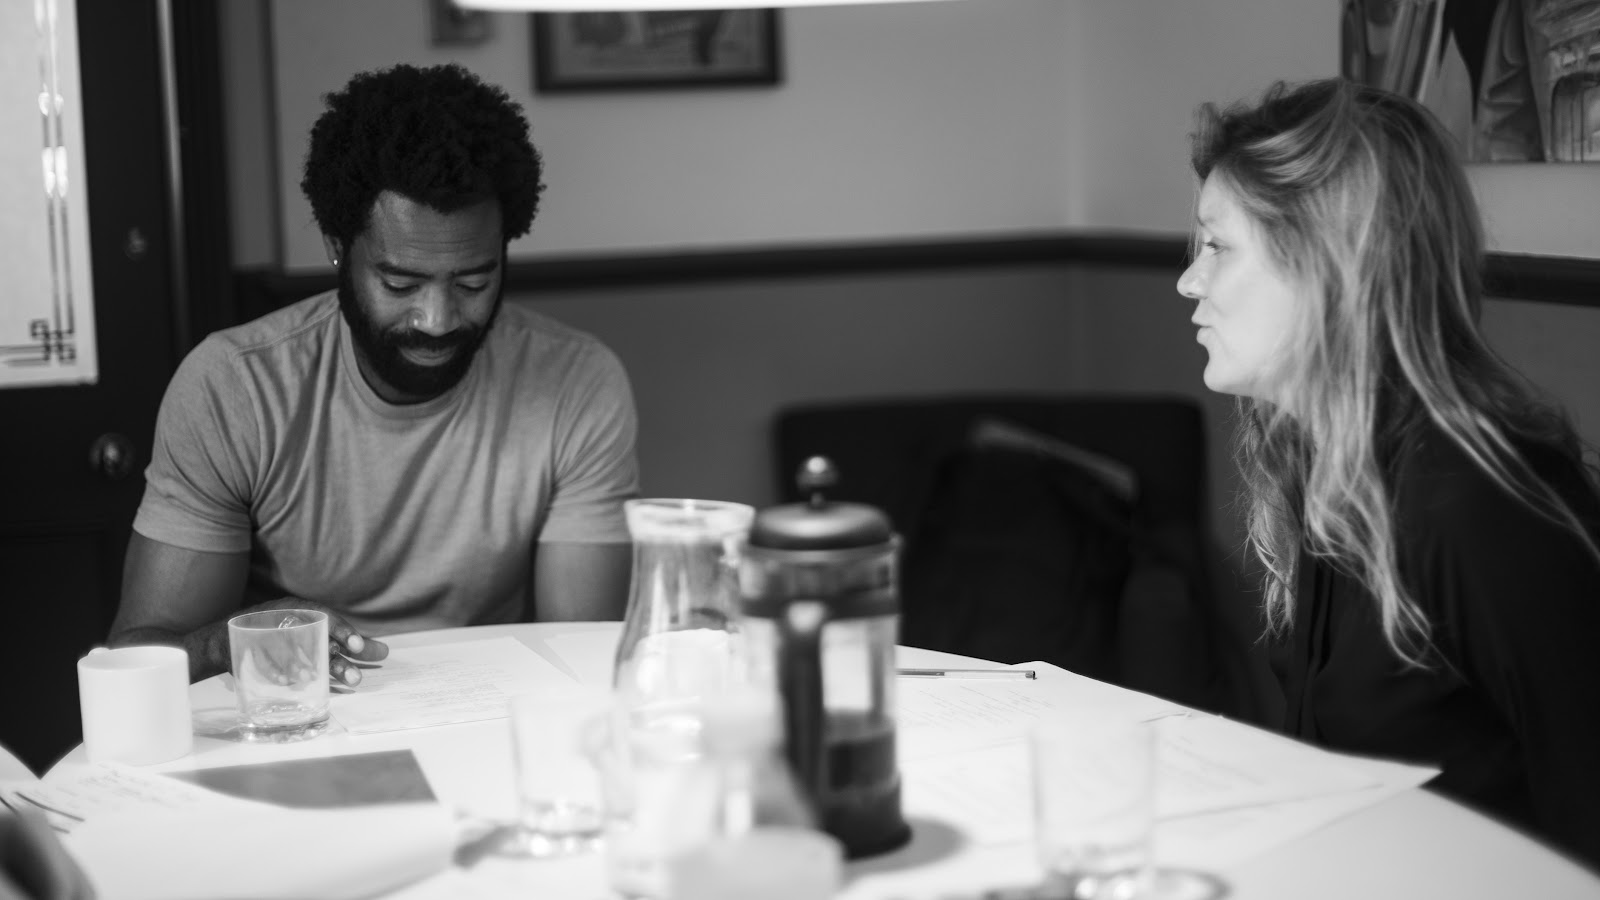 Black and white still from 'Candice' (2017). Greg and Candice sit beside each other at a restaurant table. Greg looks down at the menu, whilst Candice looks across the table at him, speaking.